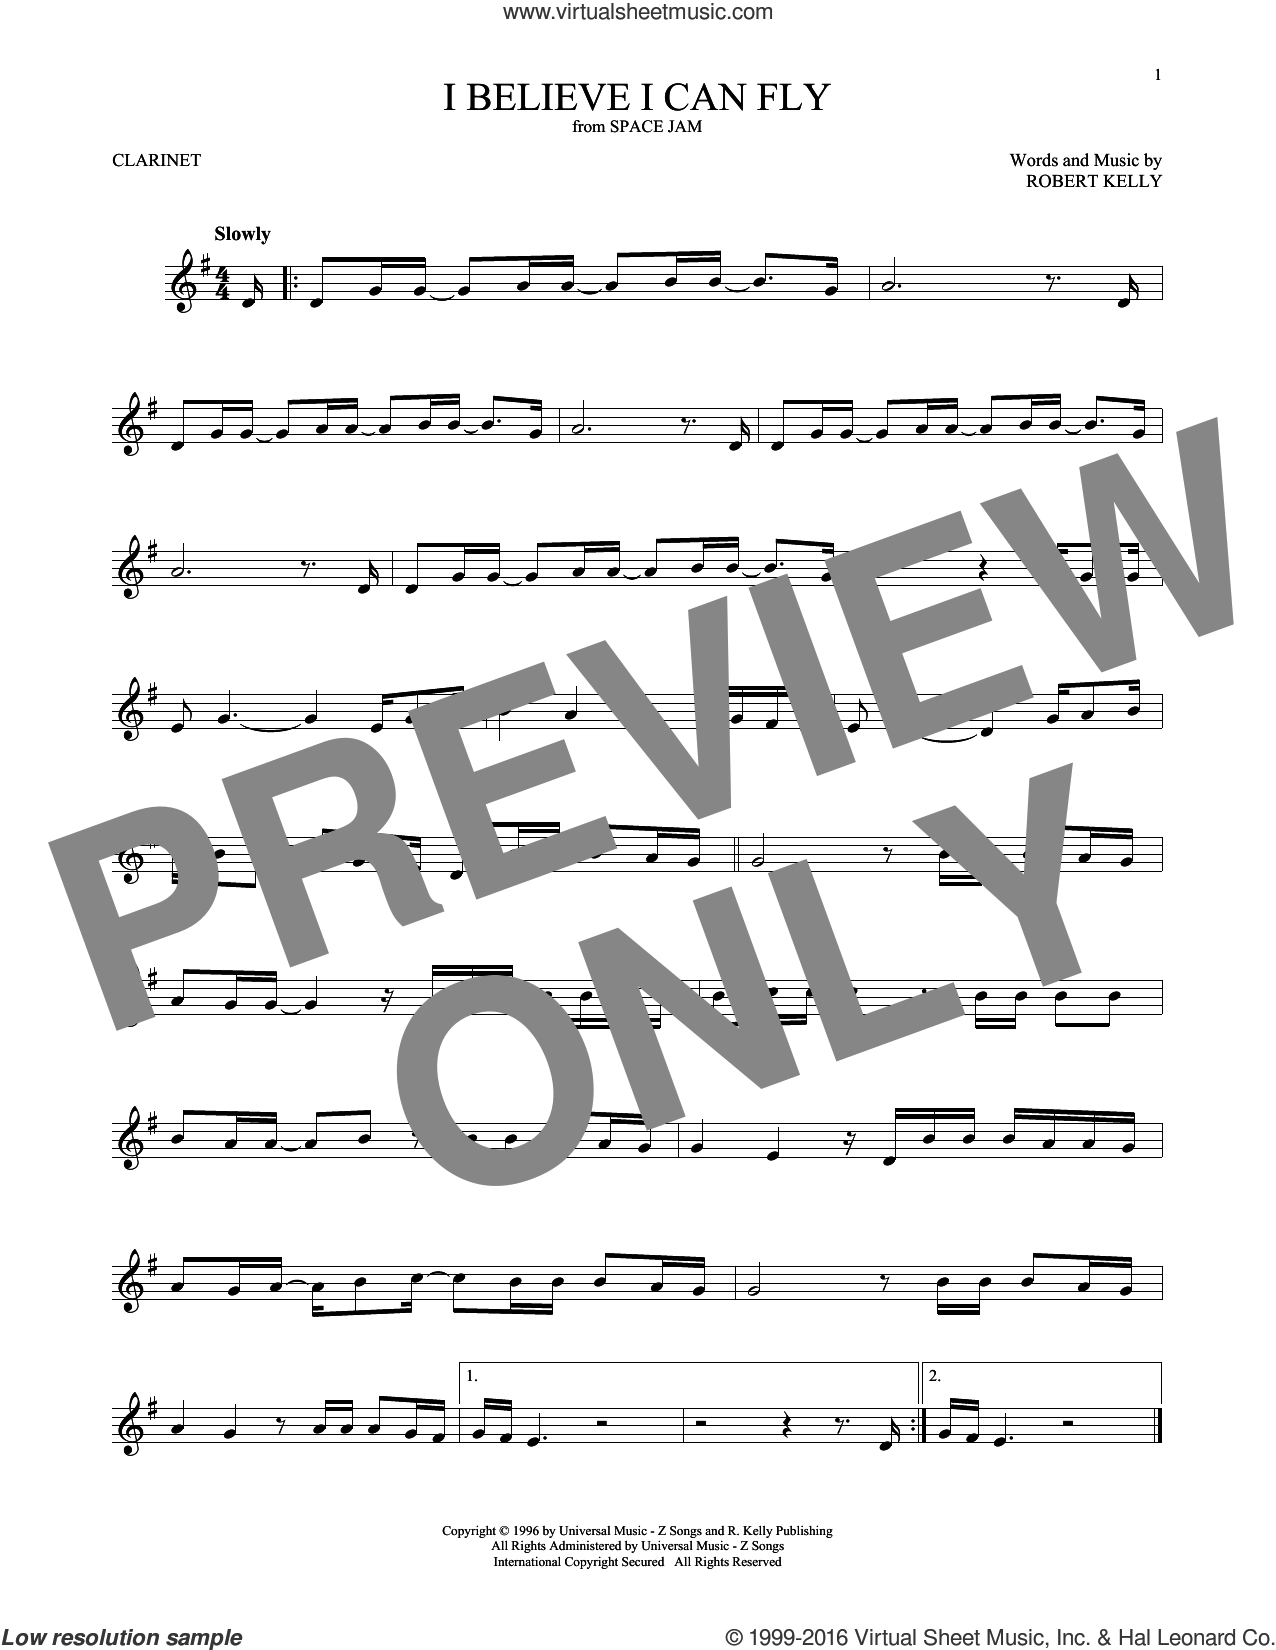 I Believe I Can Fly sheet music for clarinet solo by Robert Kelly and Jermaine Paul, intermediate skill level